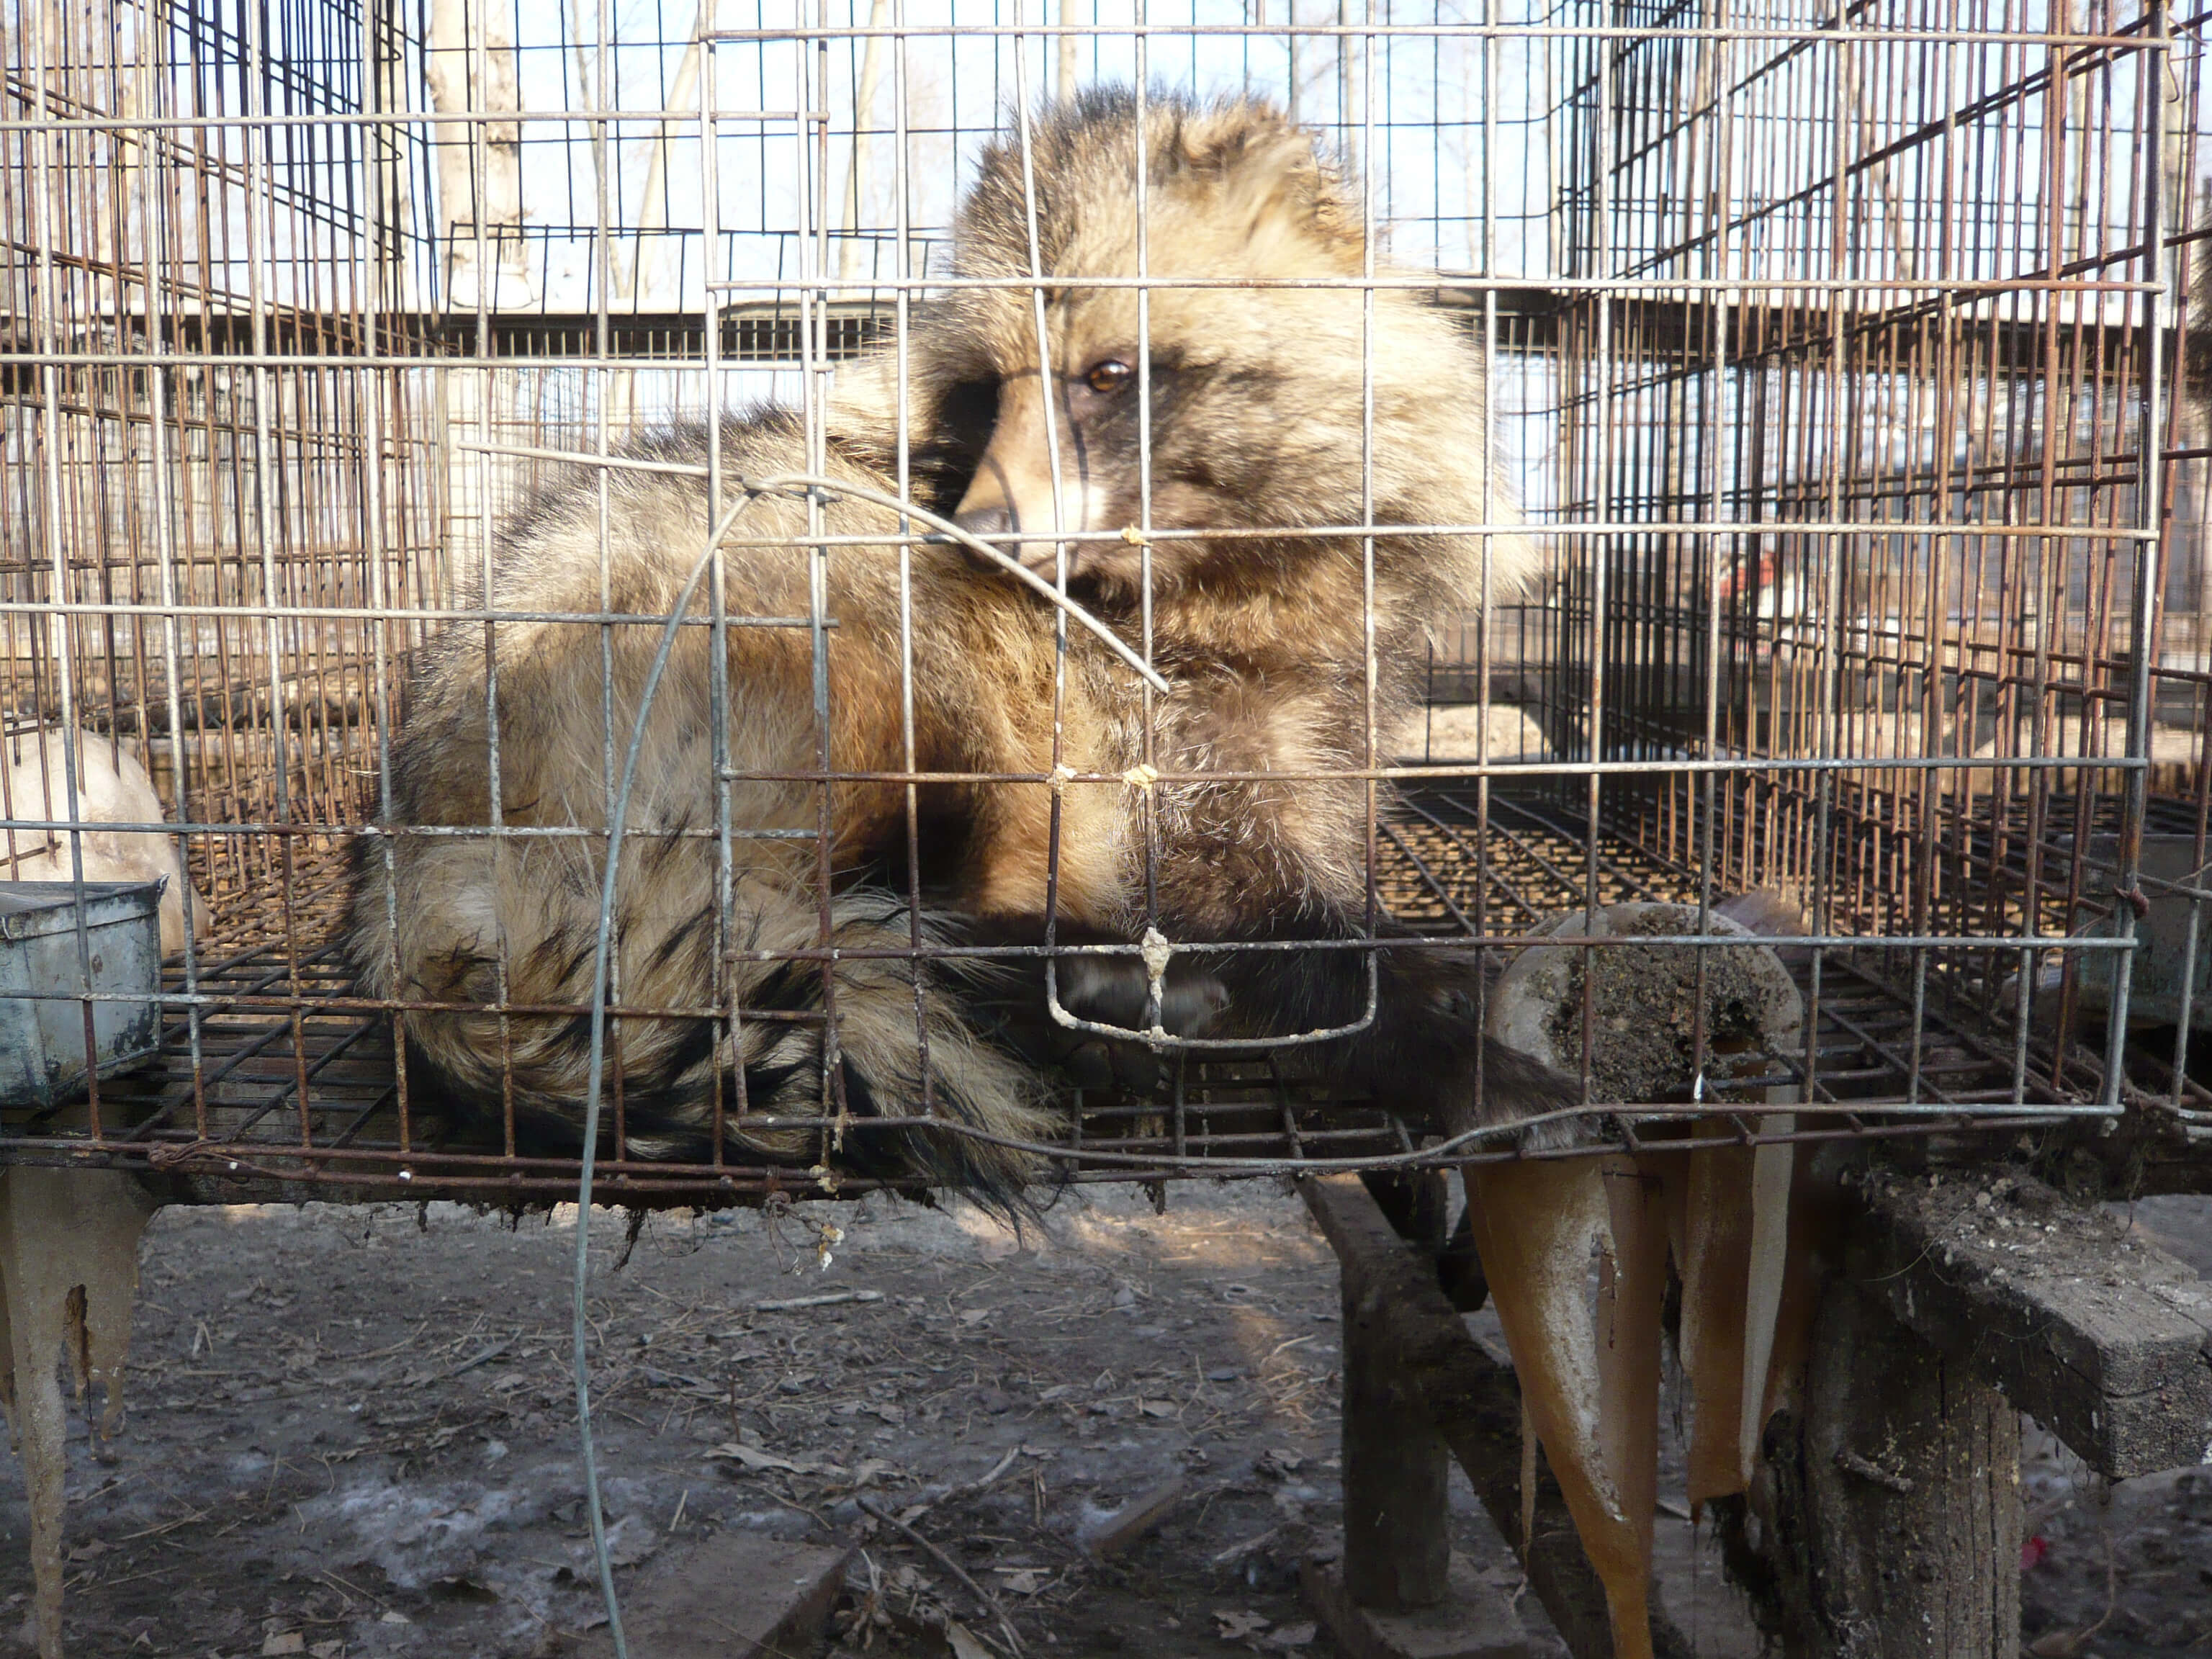 Fur Farms The Fur Industry Animals Used For Clothing